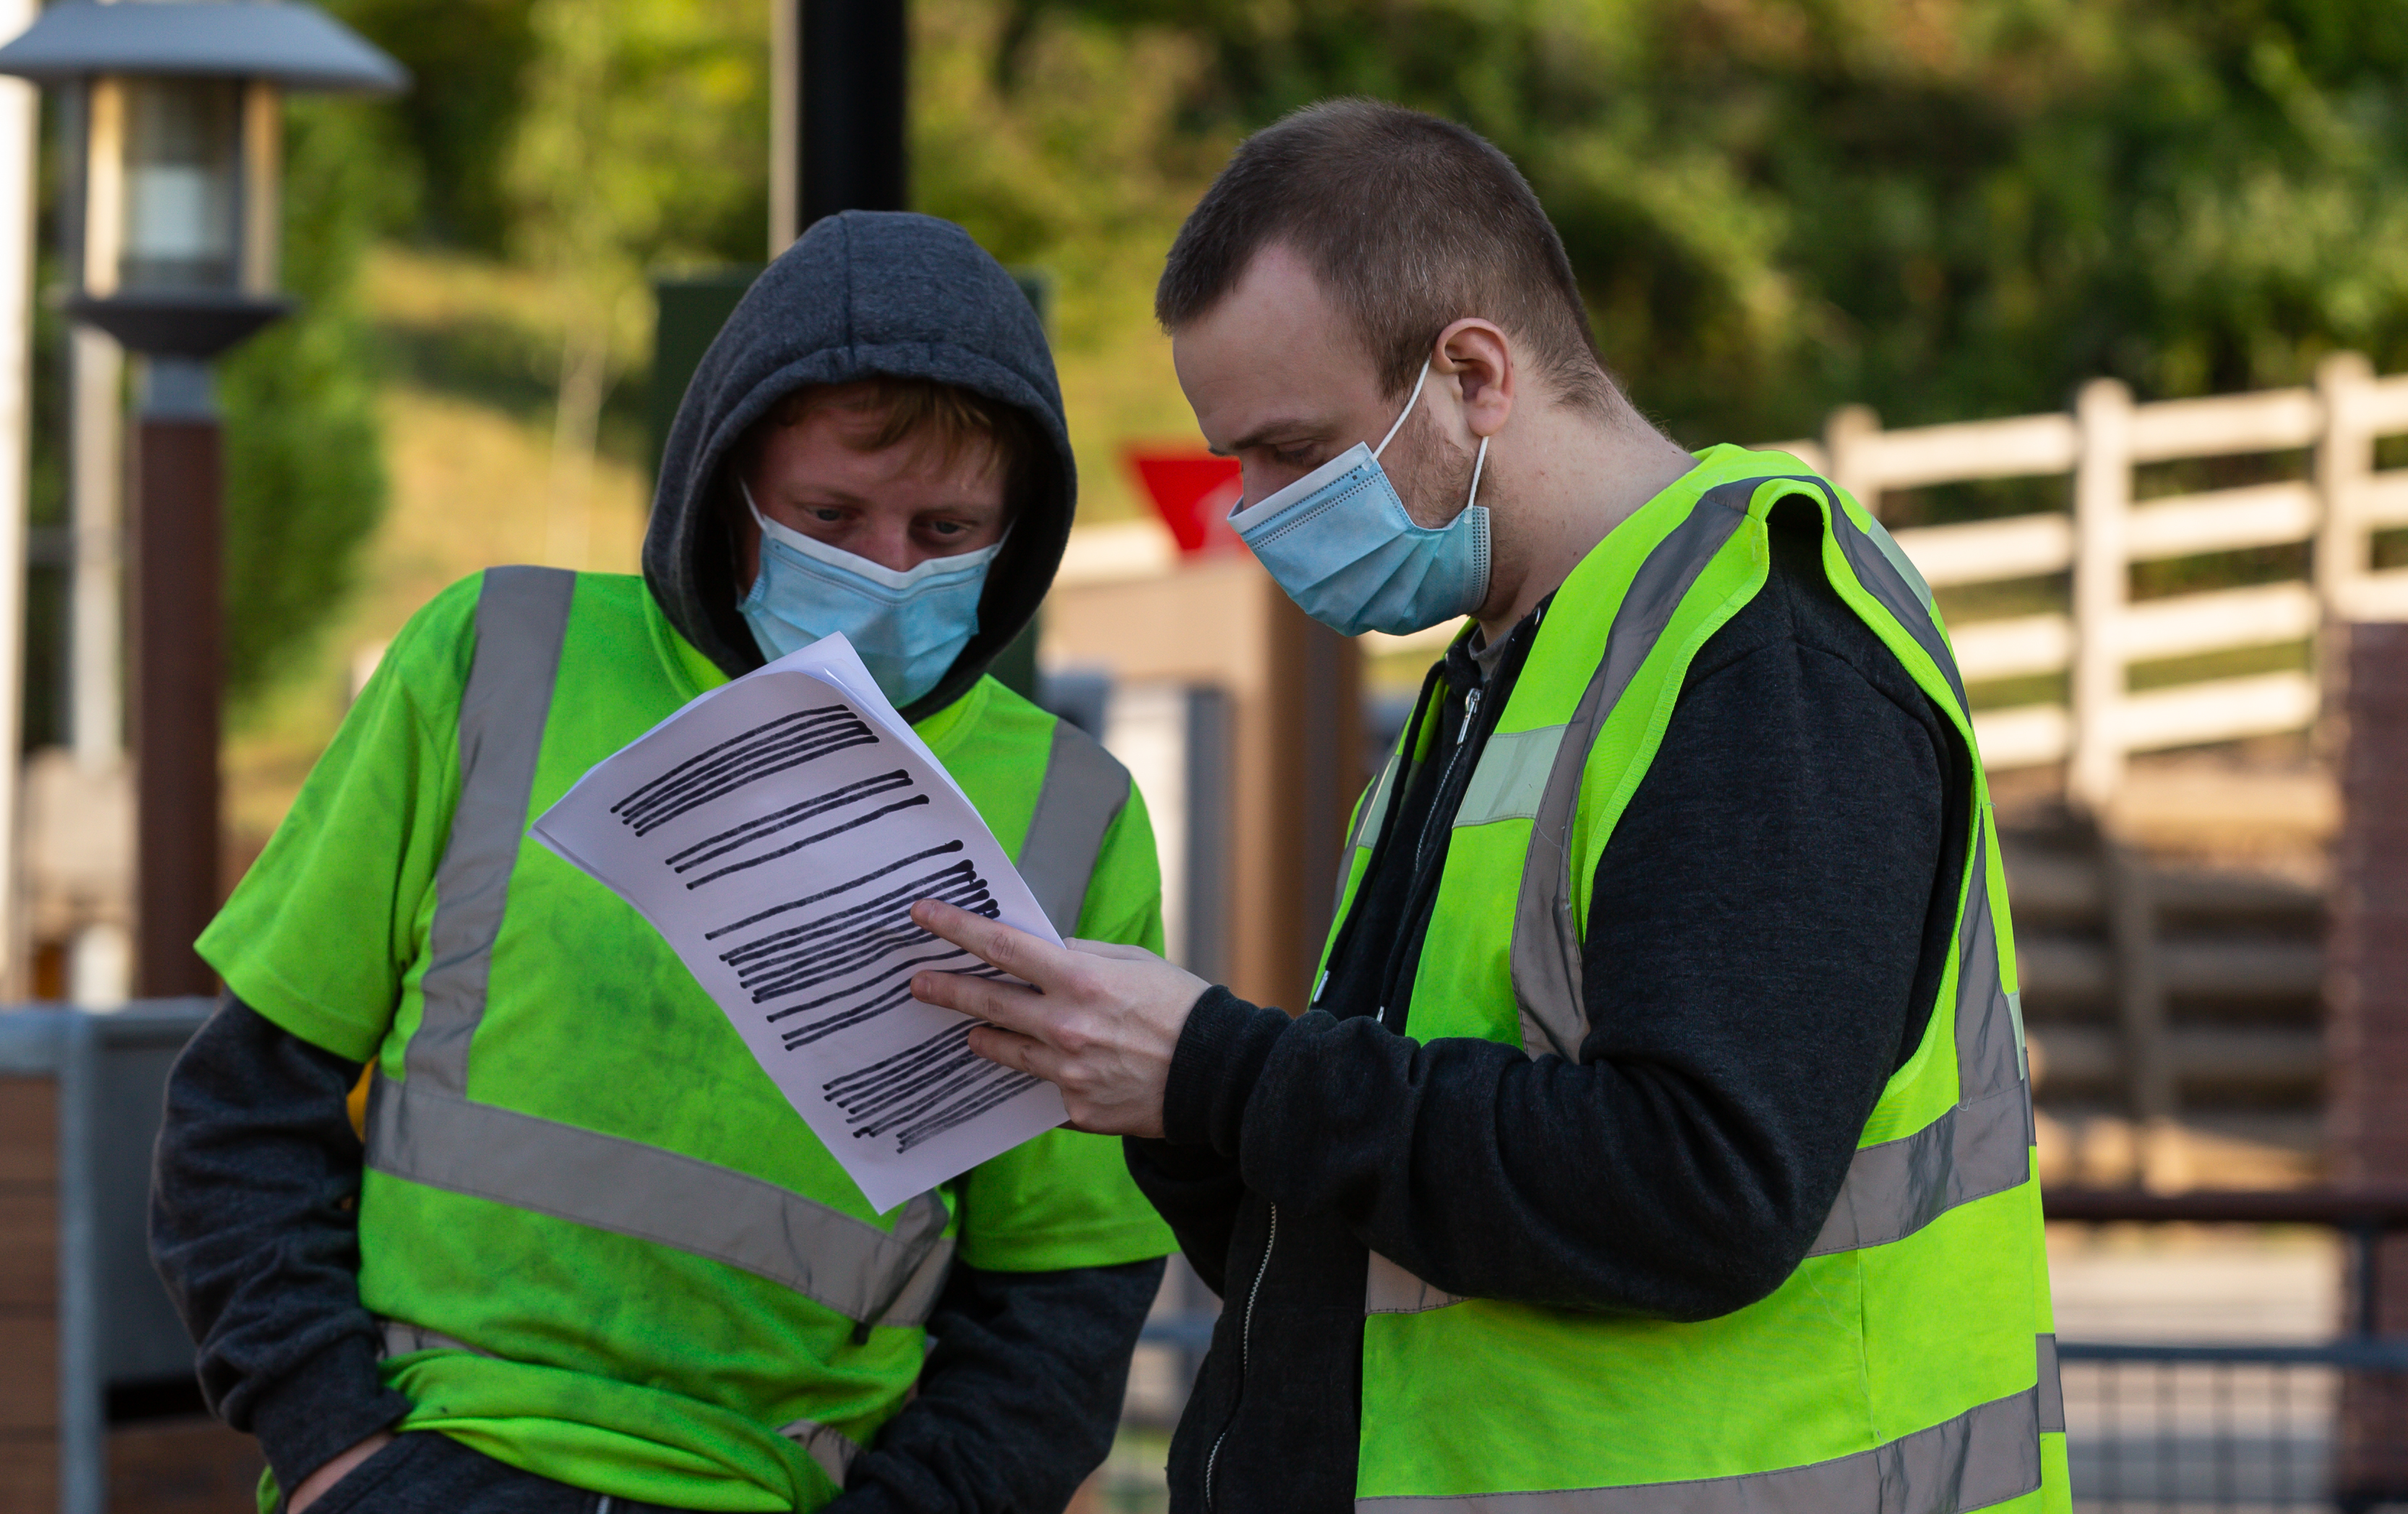 BLACKWOOD, WALES - JUNE 2: Staff wearing PPE check over a delivery list at Mcdonlad's as they prepare to resume trading for takeaway only in Wales within the next 24 hours following lockdown on June 2, 2020 in Blackwood, Wales, United Kingdom. The British government continues to ease the coronavirus lockdown by announcing schools will open to reception year pupils plus years one and six from June 1st. Open-air markets and car showrooms can also open from the same date. (Photo by Huw Fairclough/Getty Images)